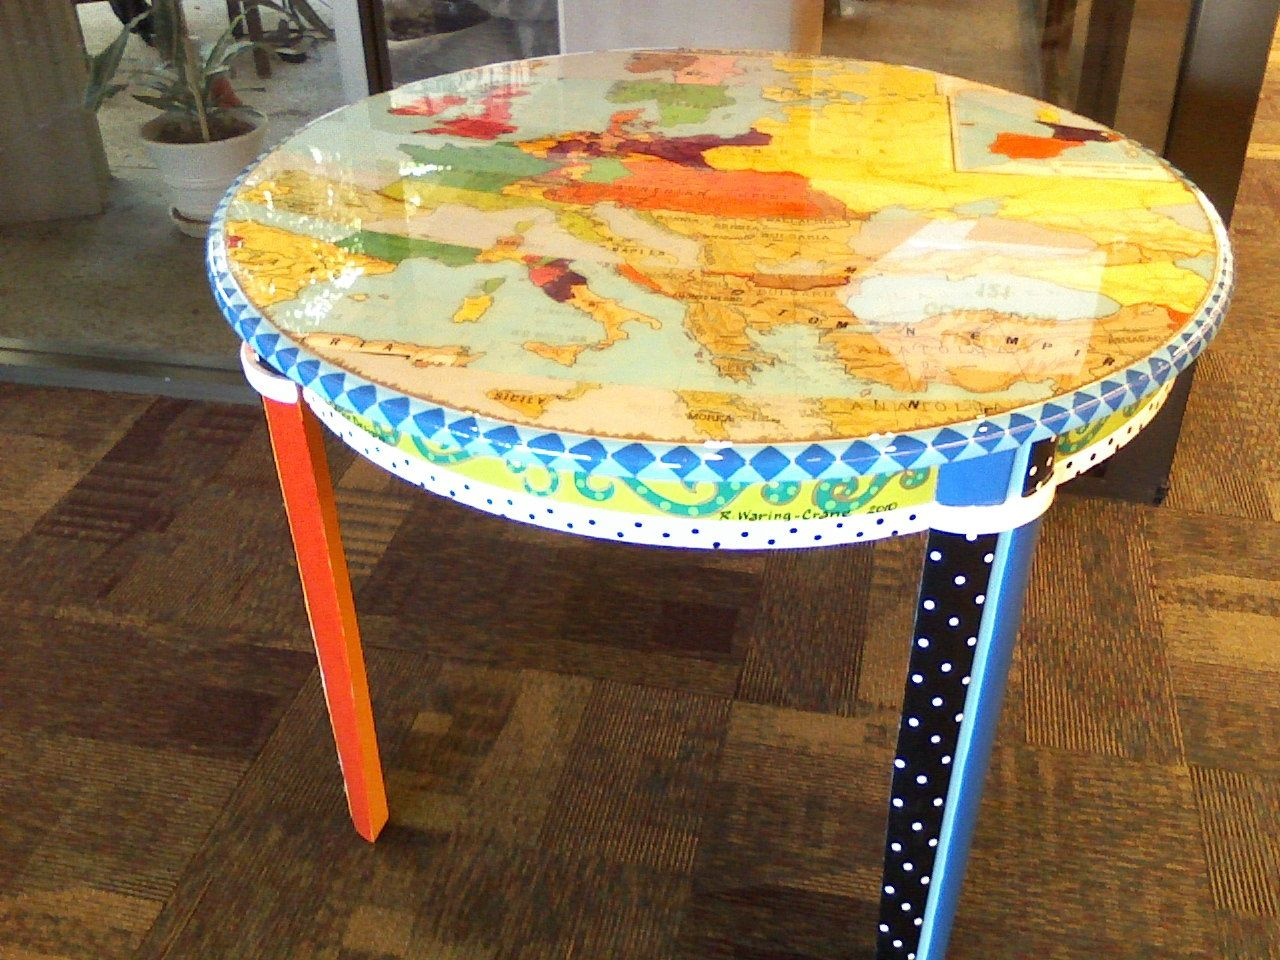 Map Table Features Two Vintage Maps Of Europe And Acrylic Paint On